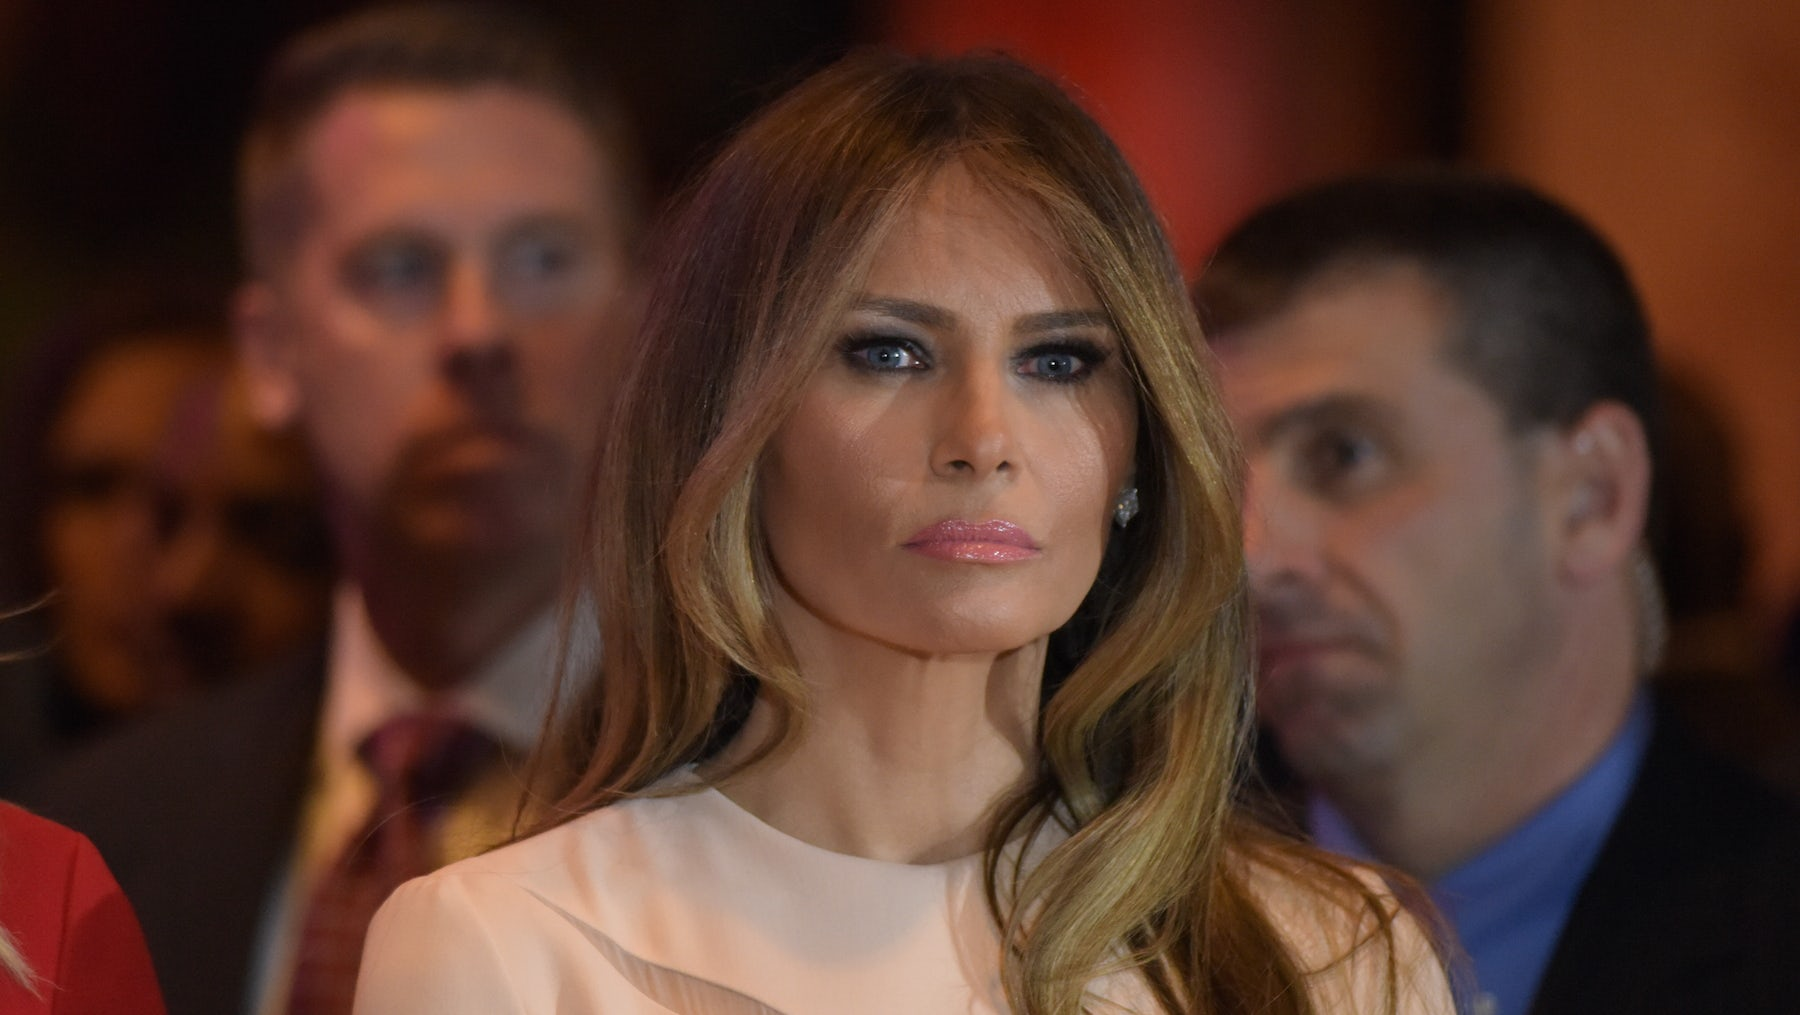 Melania Trump, future first lady of the United States | Source: Shutterstock